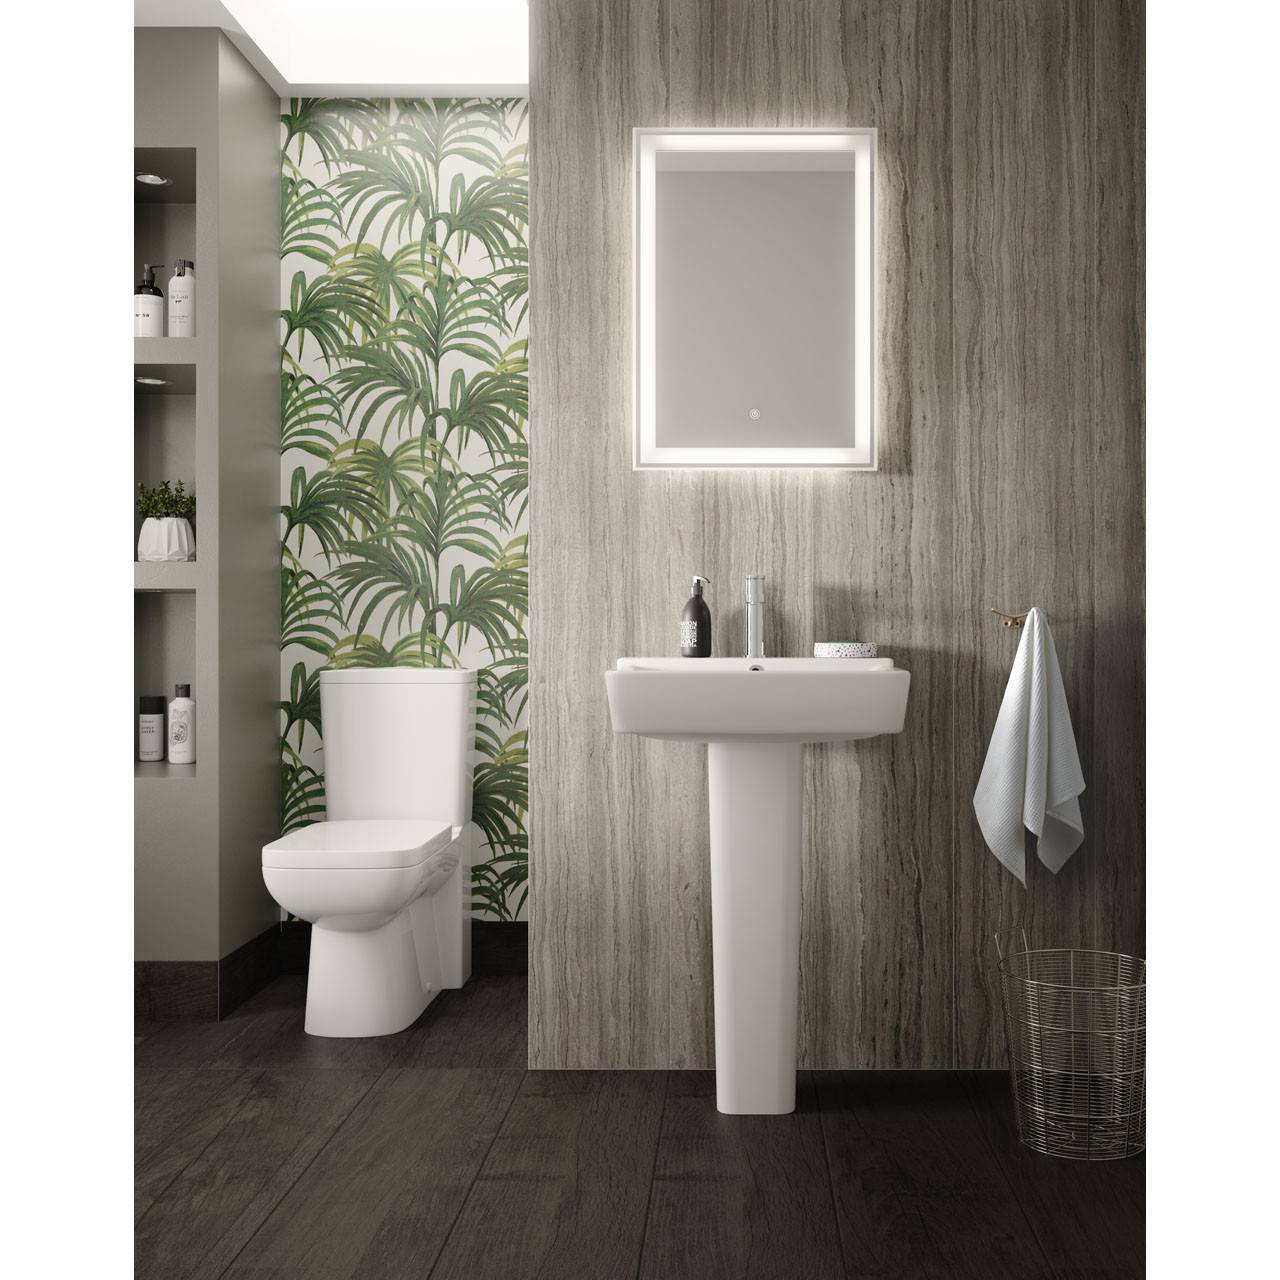 Hudson Reed Dazzle 500mm x 700mm LED Mirror - LQ085